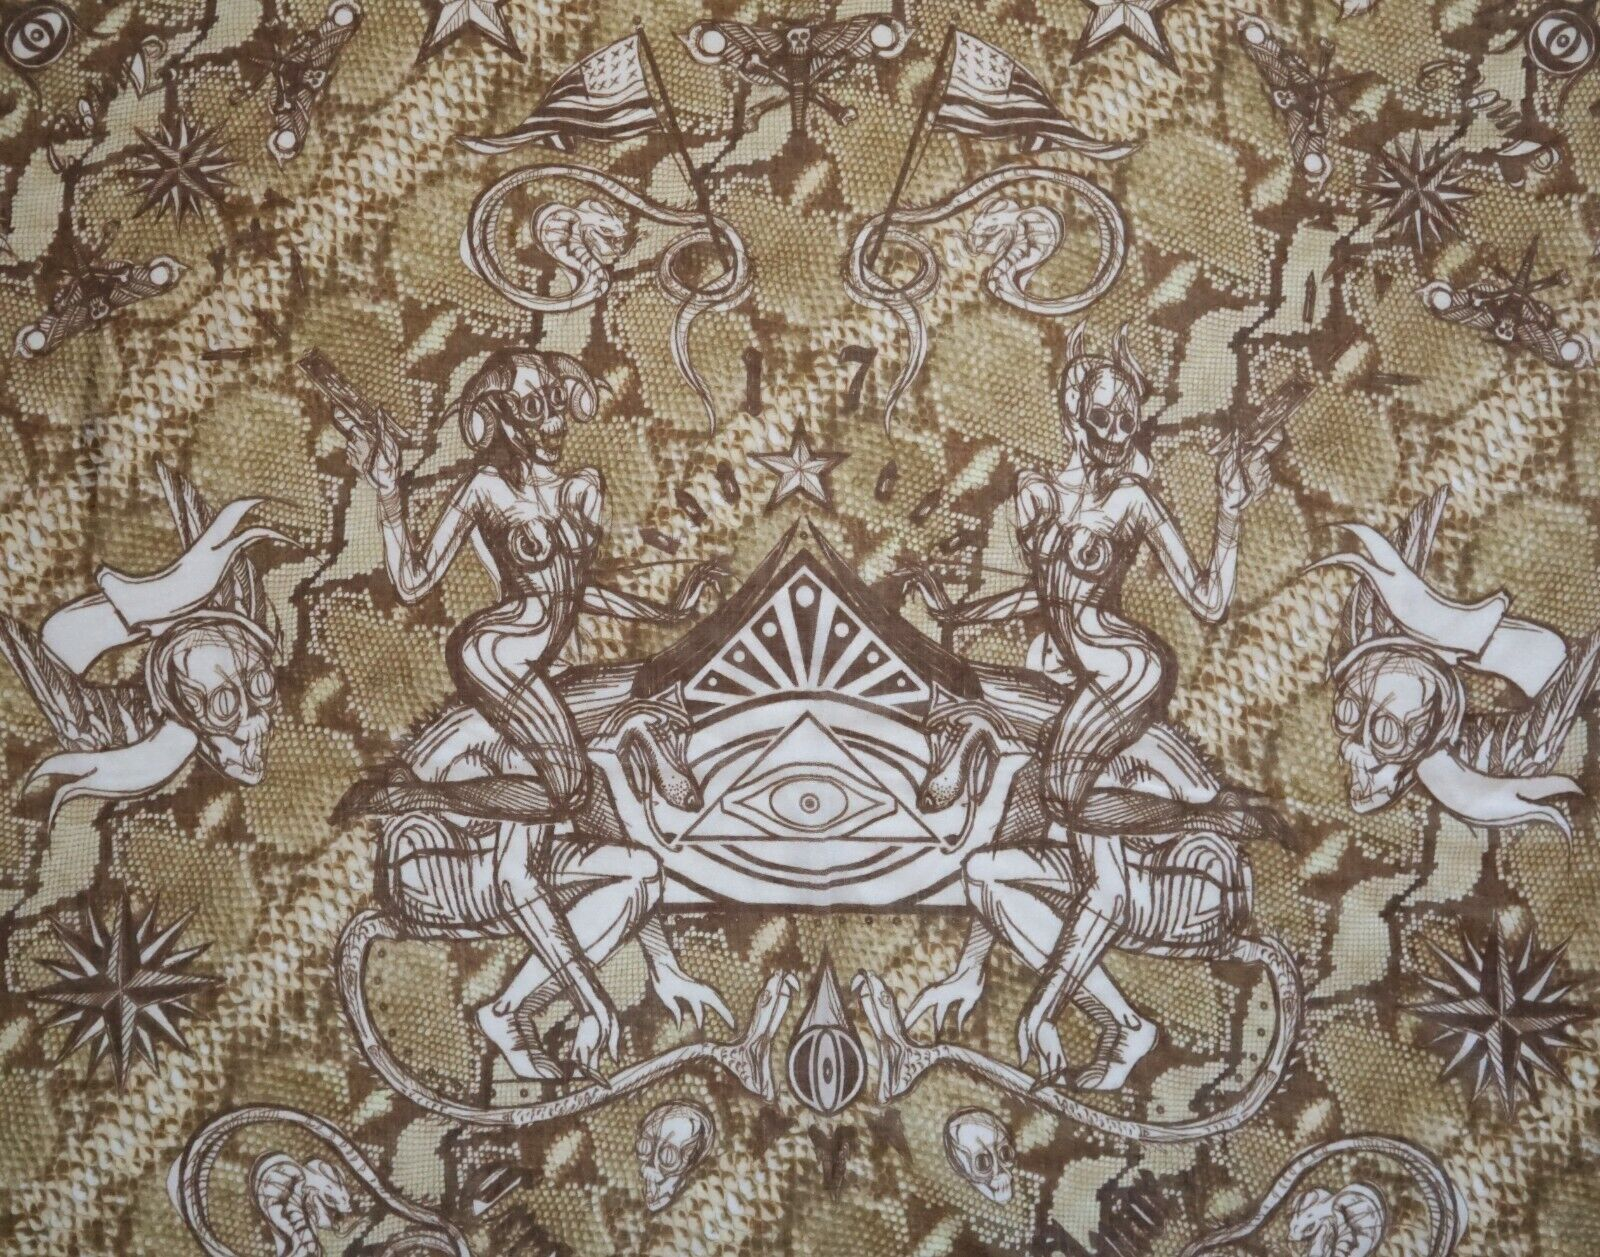 NWOT Authentic GIVENCHY SNAKE TATTOO 100% CASHMERE Shawl Scarf